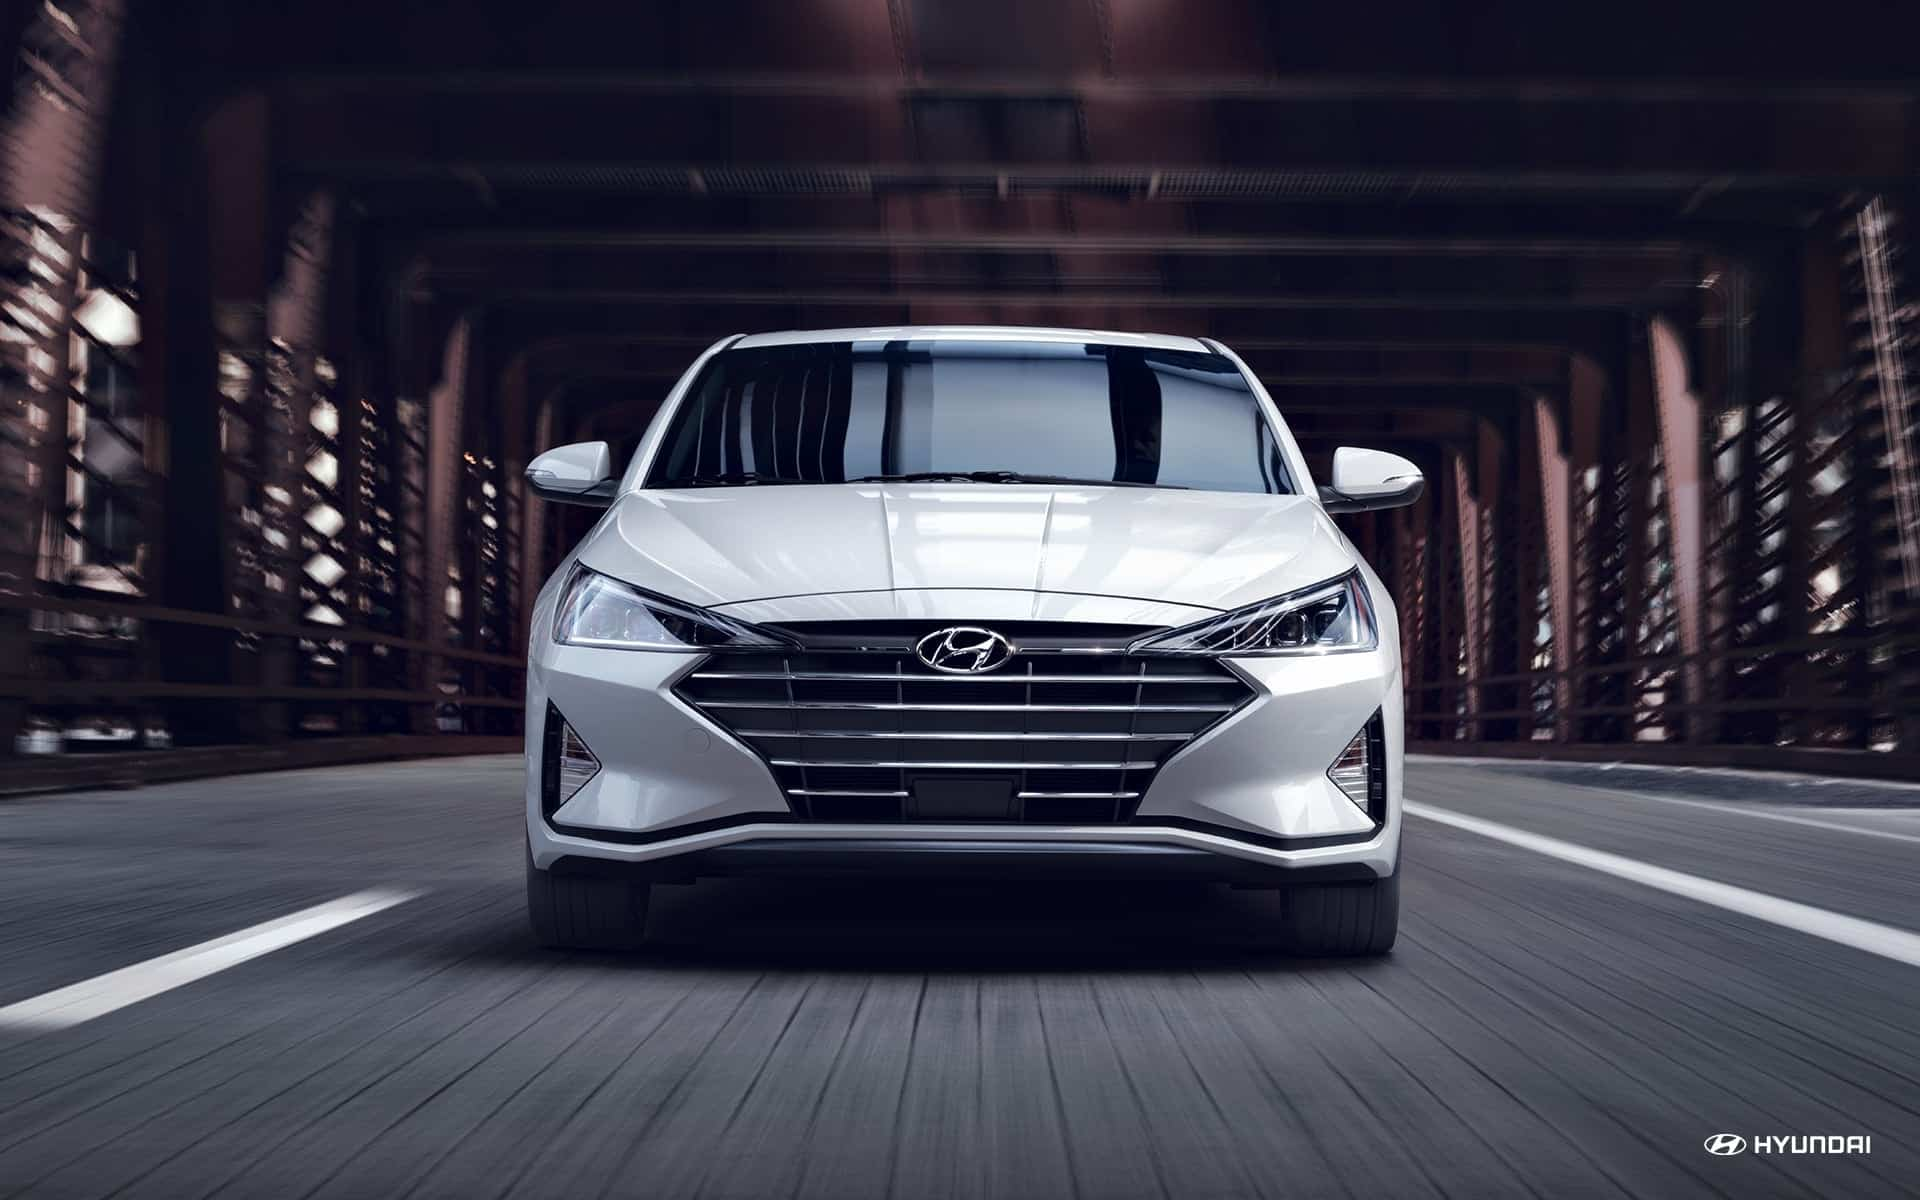 What's new with the 2020 Hyundai Elantra near Charlotte NC